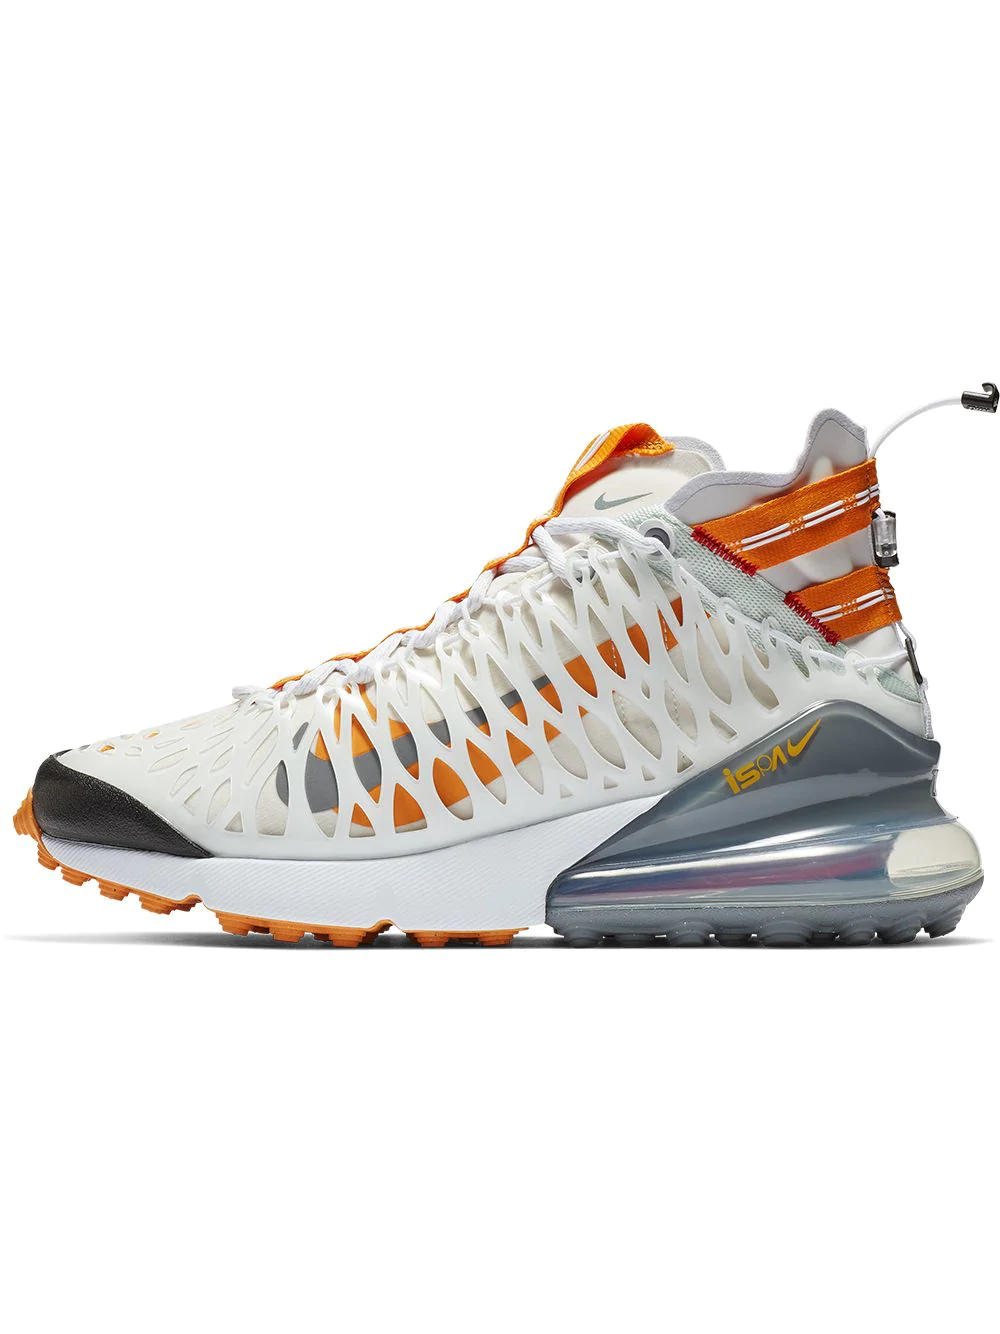 6aeb816118f4 Nike White Air Max 270 Ispa High Top Sneakers